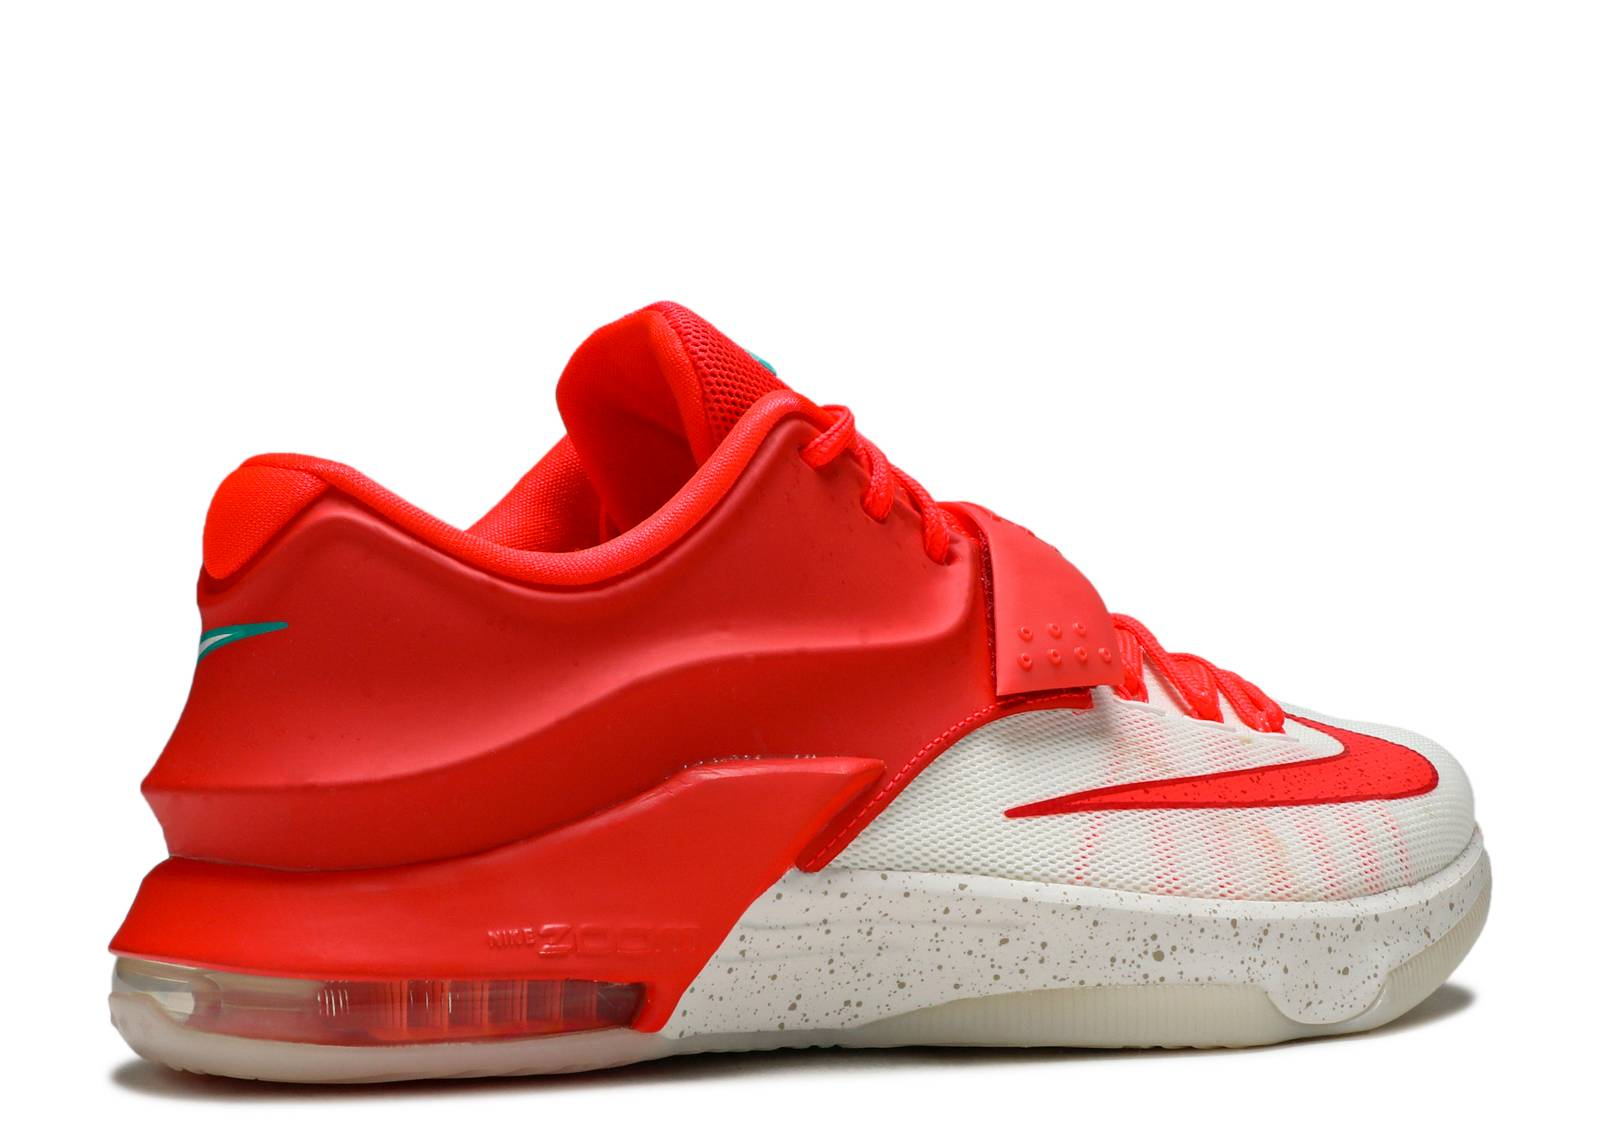 competitive price 1d31d f0af4 free shipping nike kd 7 christmas bad apple 9c140 c6754